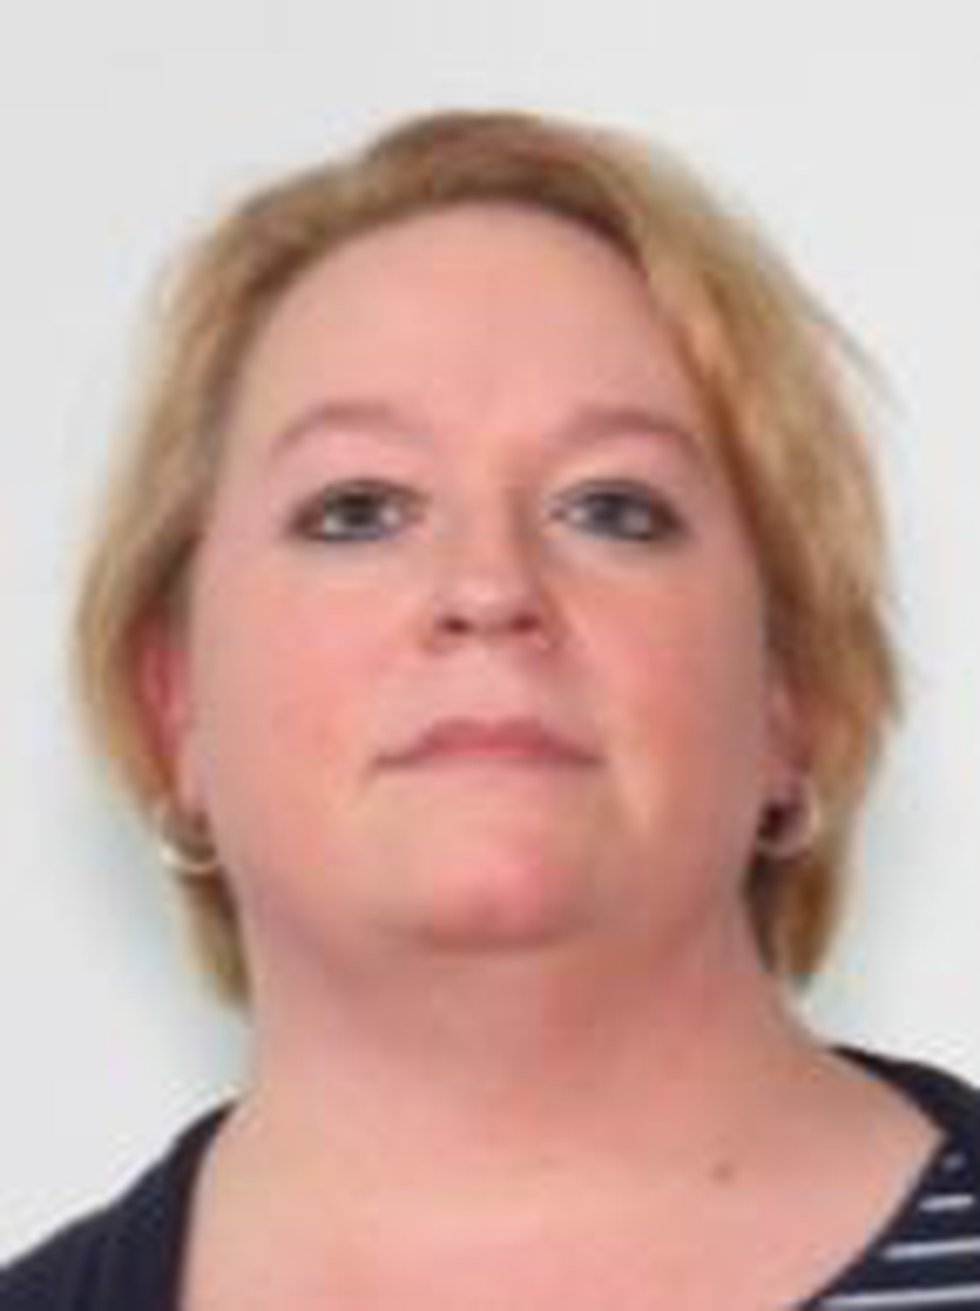 Pamela Dick was murdered by her husband on Aug. 6, 2020.